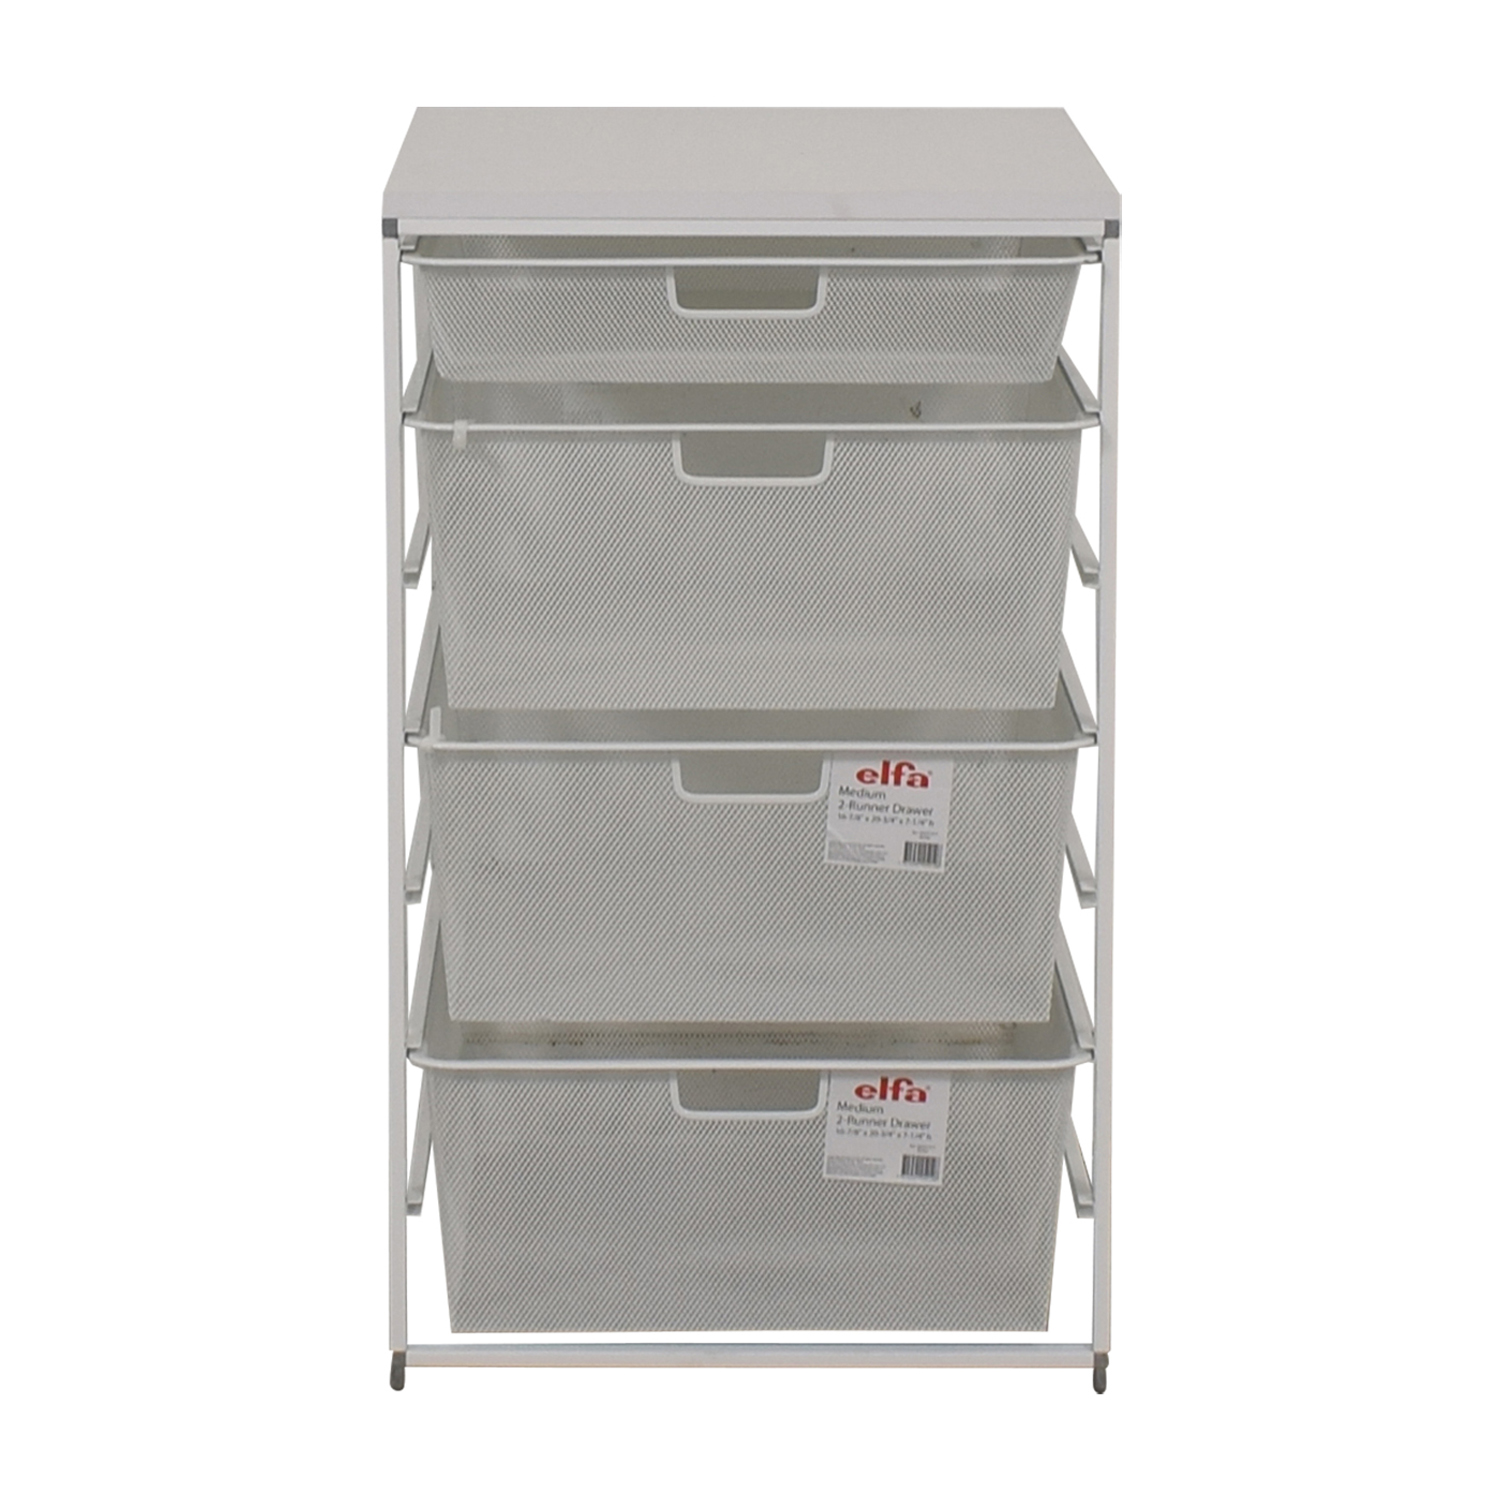 Elfa Elfa  White Mesh Closet Drawers white